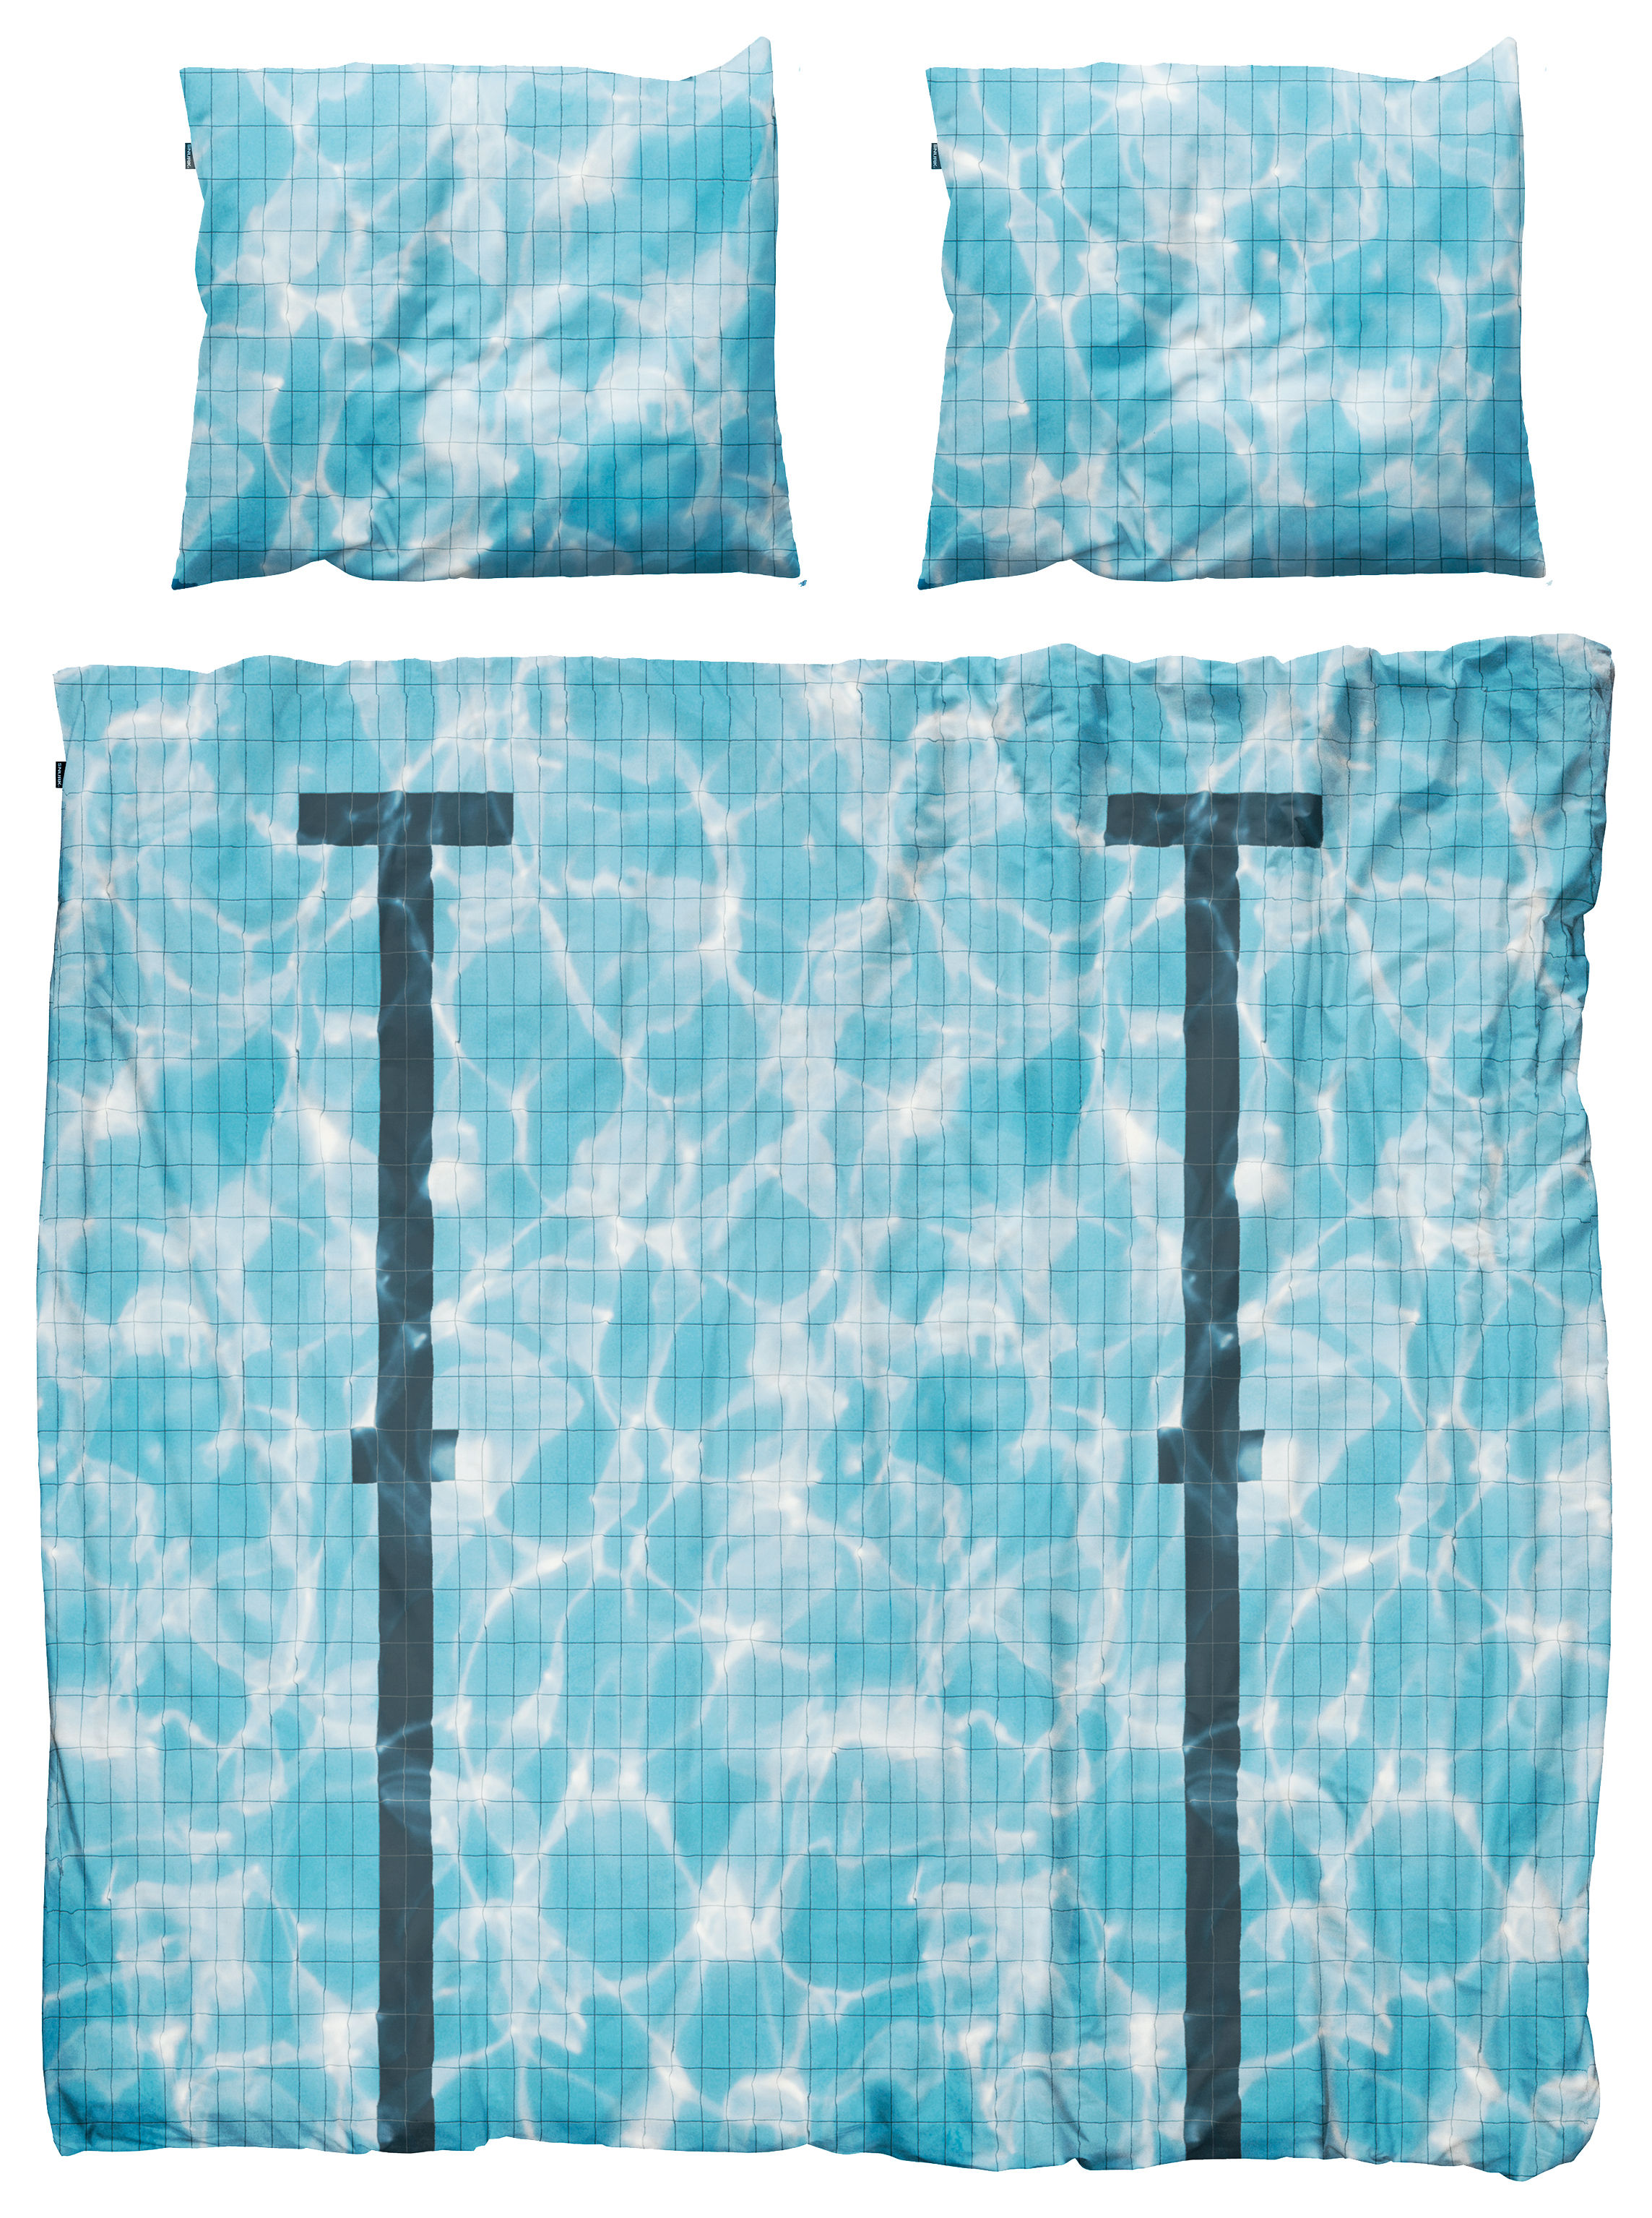 Decoration - Bedding & Bath Towels - Pool Bedlinen set for 2 people by Snurk - Pool - Cotton percale